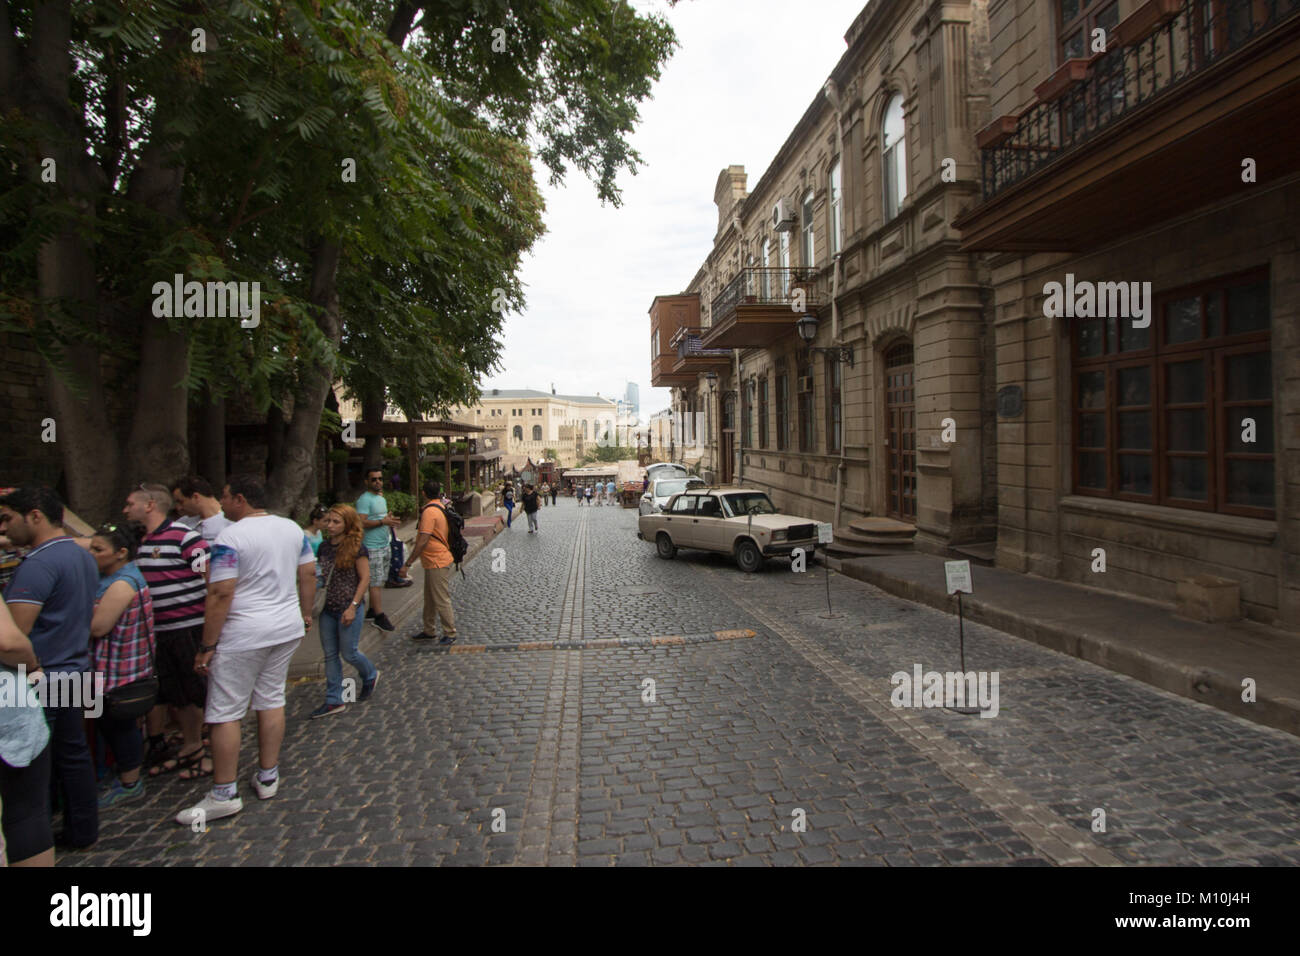 is the historical core of Baku, the capital of Azerbaijan,  including the Palace of the Shirvanshahs and Maiden - Stock Image